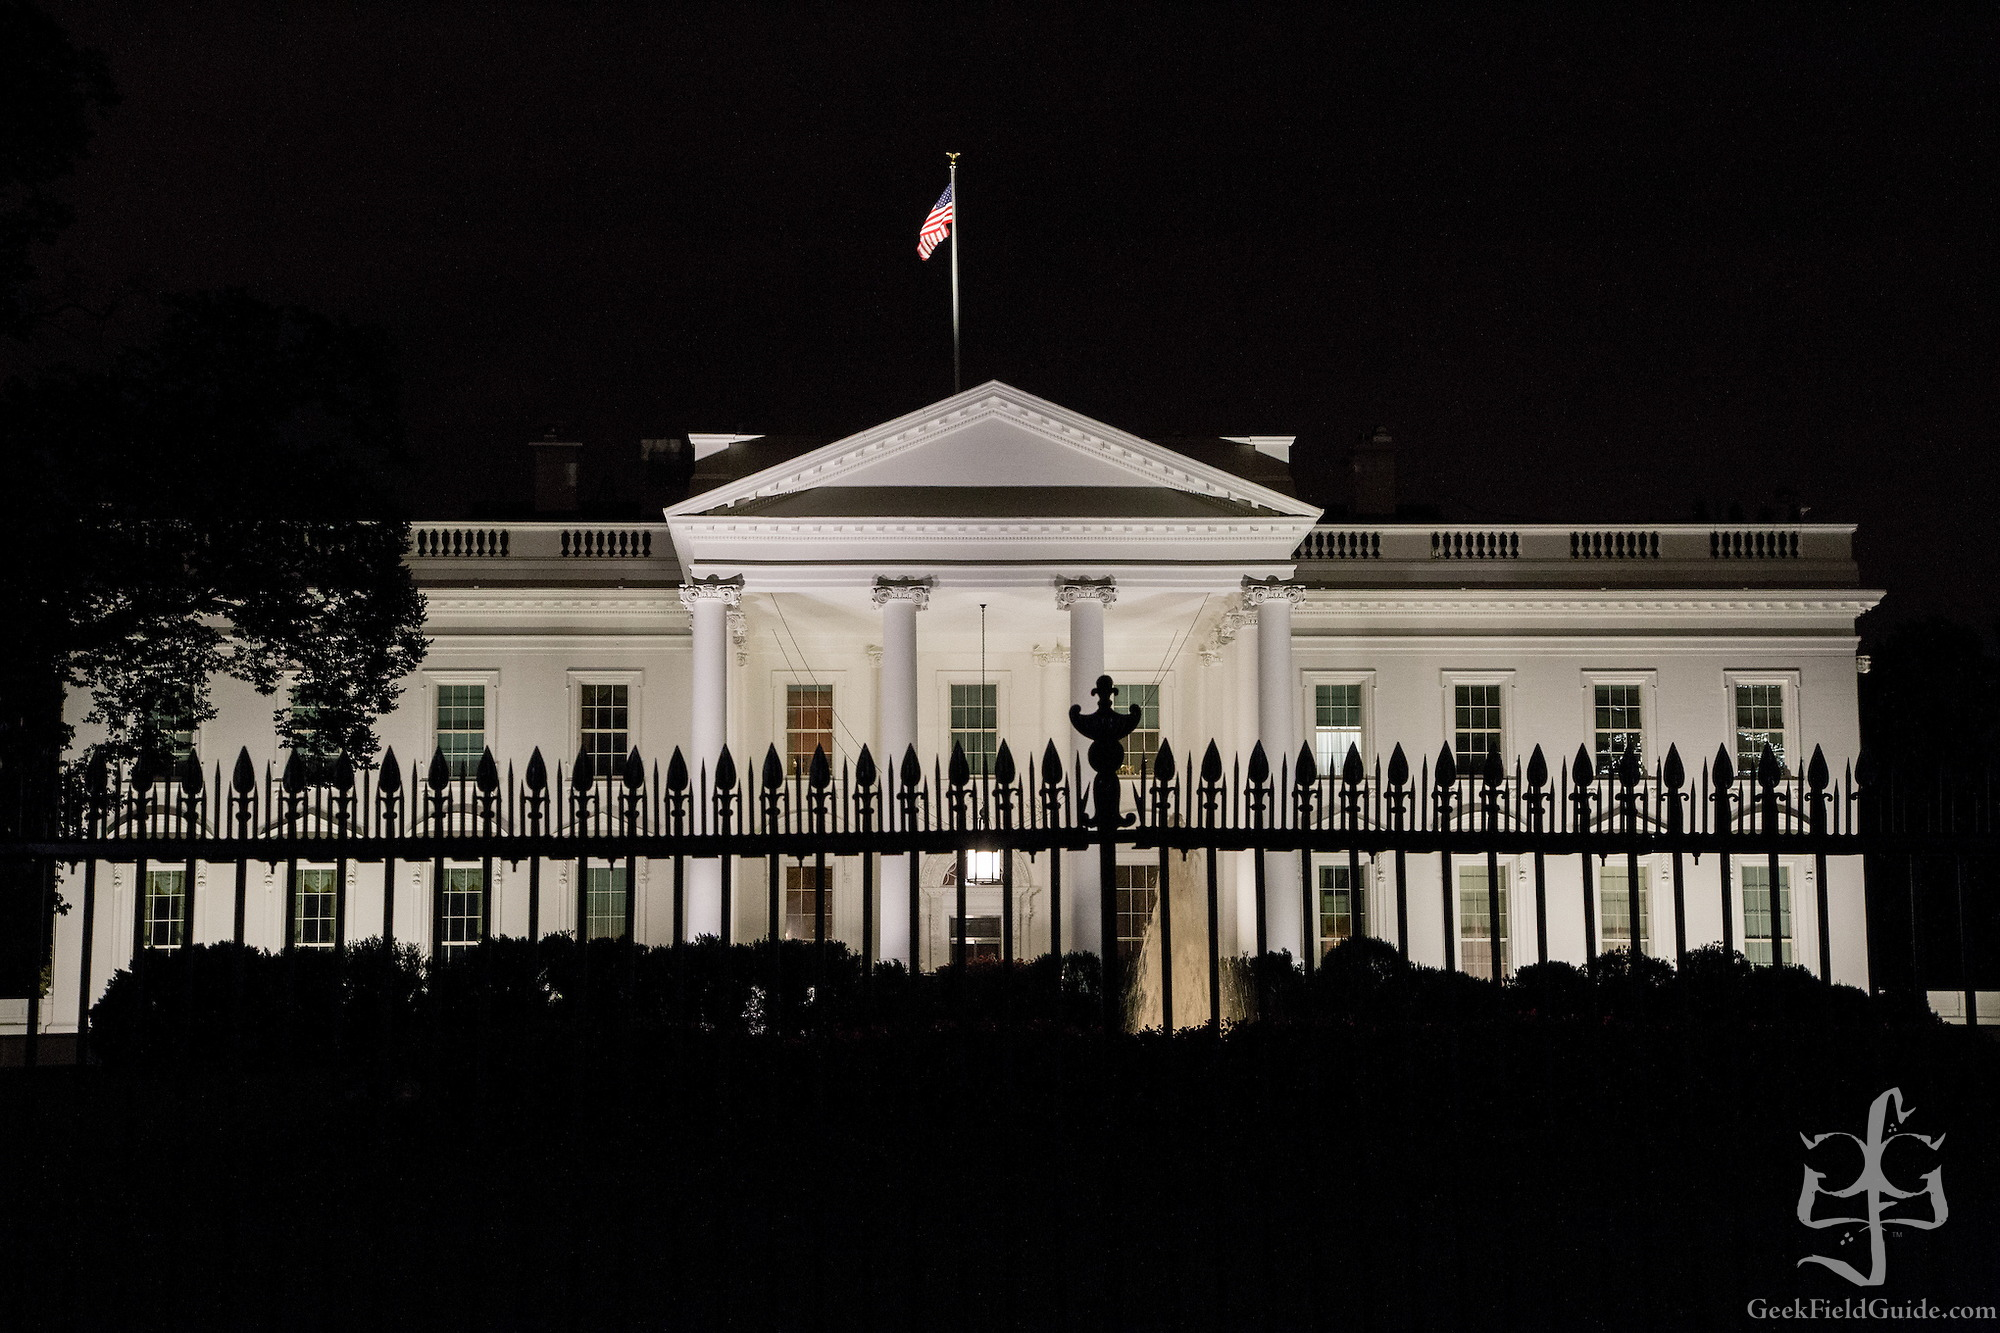 The White House at night. Washington, D.C. (Warren Schultz)